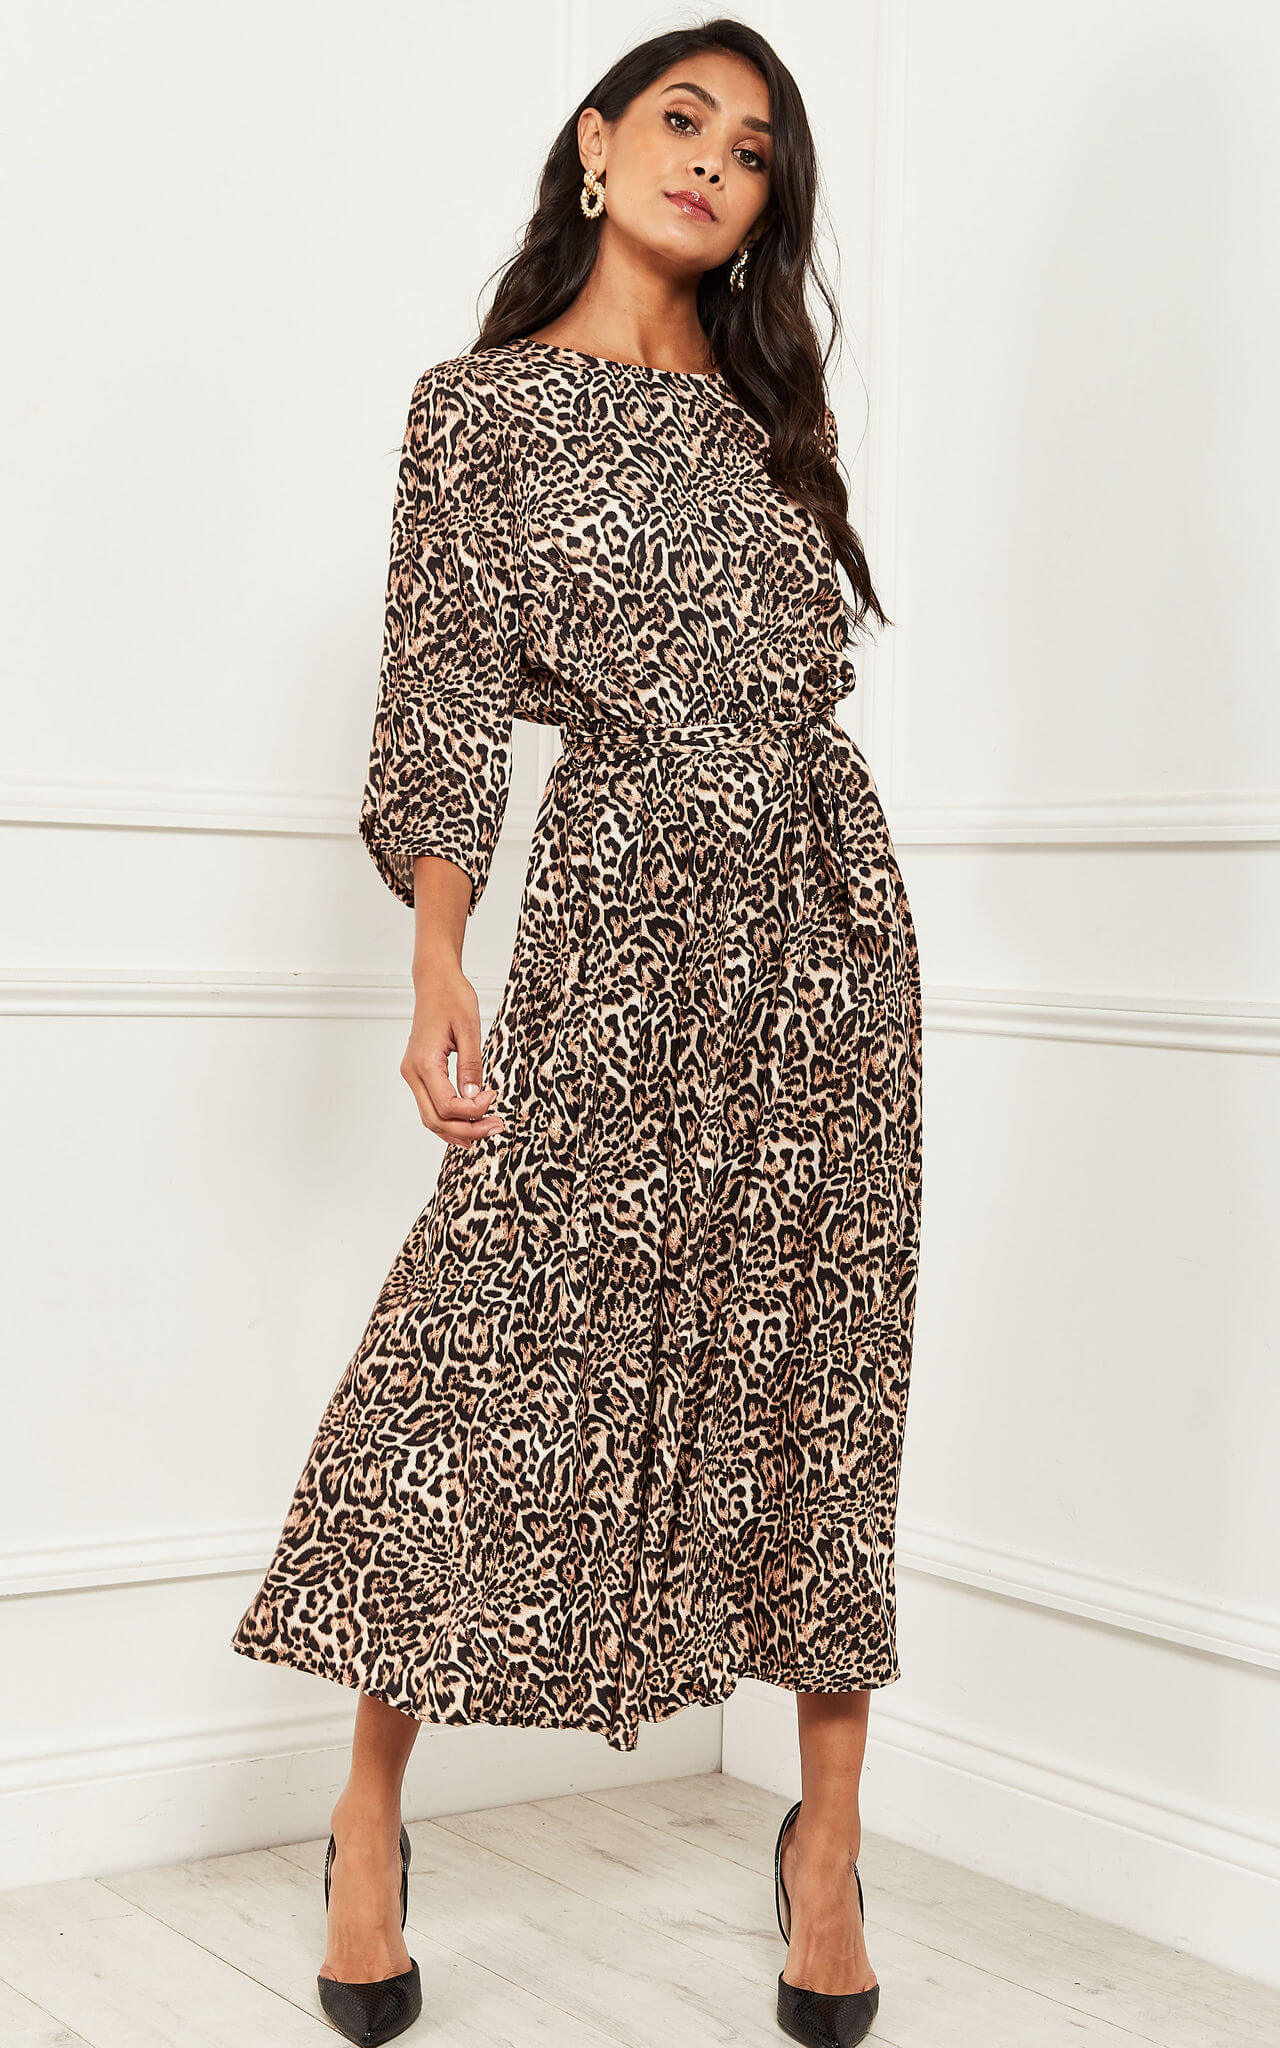 Model wears a leopard midaxi dress with 3/4 length sleeves and black heels